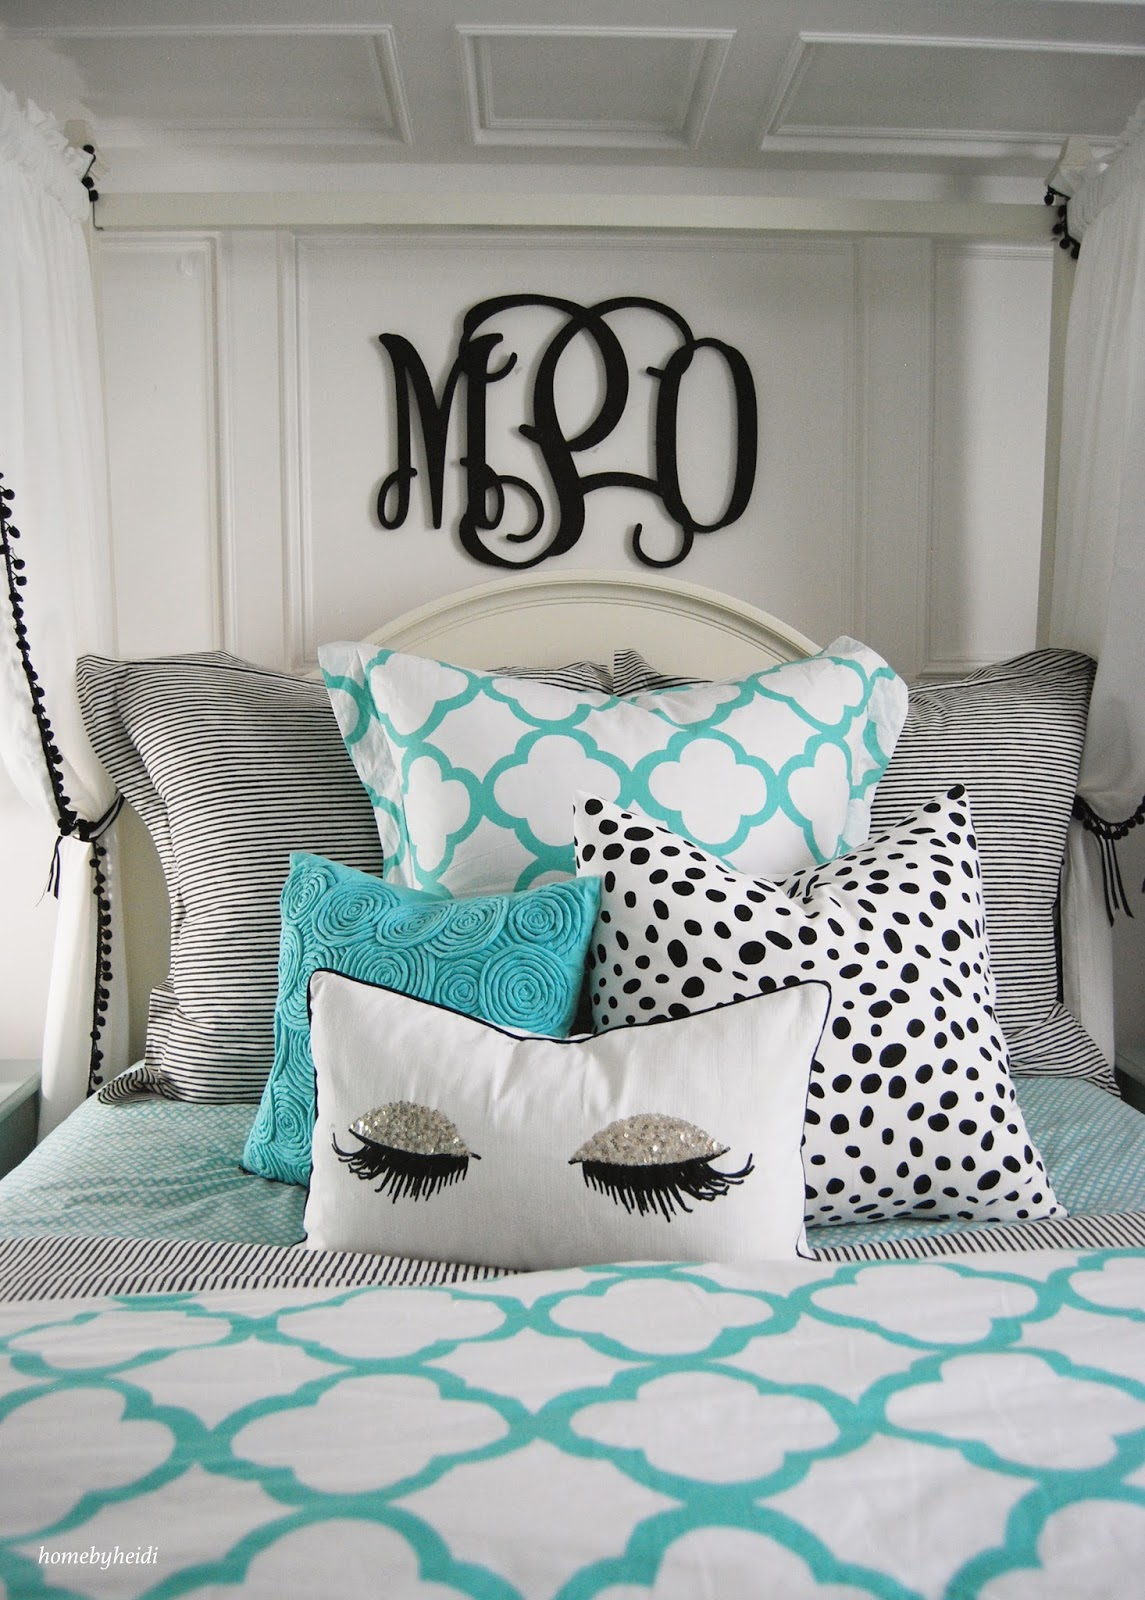 Home by heidi tiffany inspired bedroom for Teen bedroom accessories